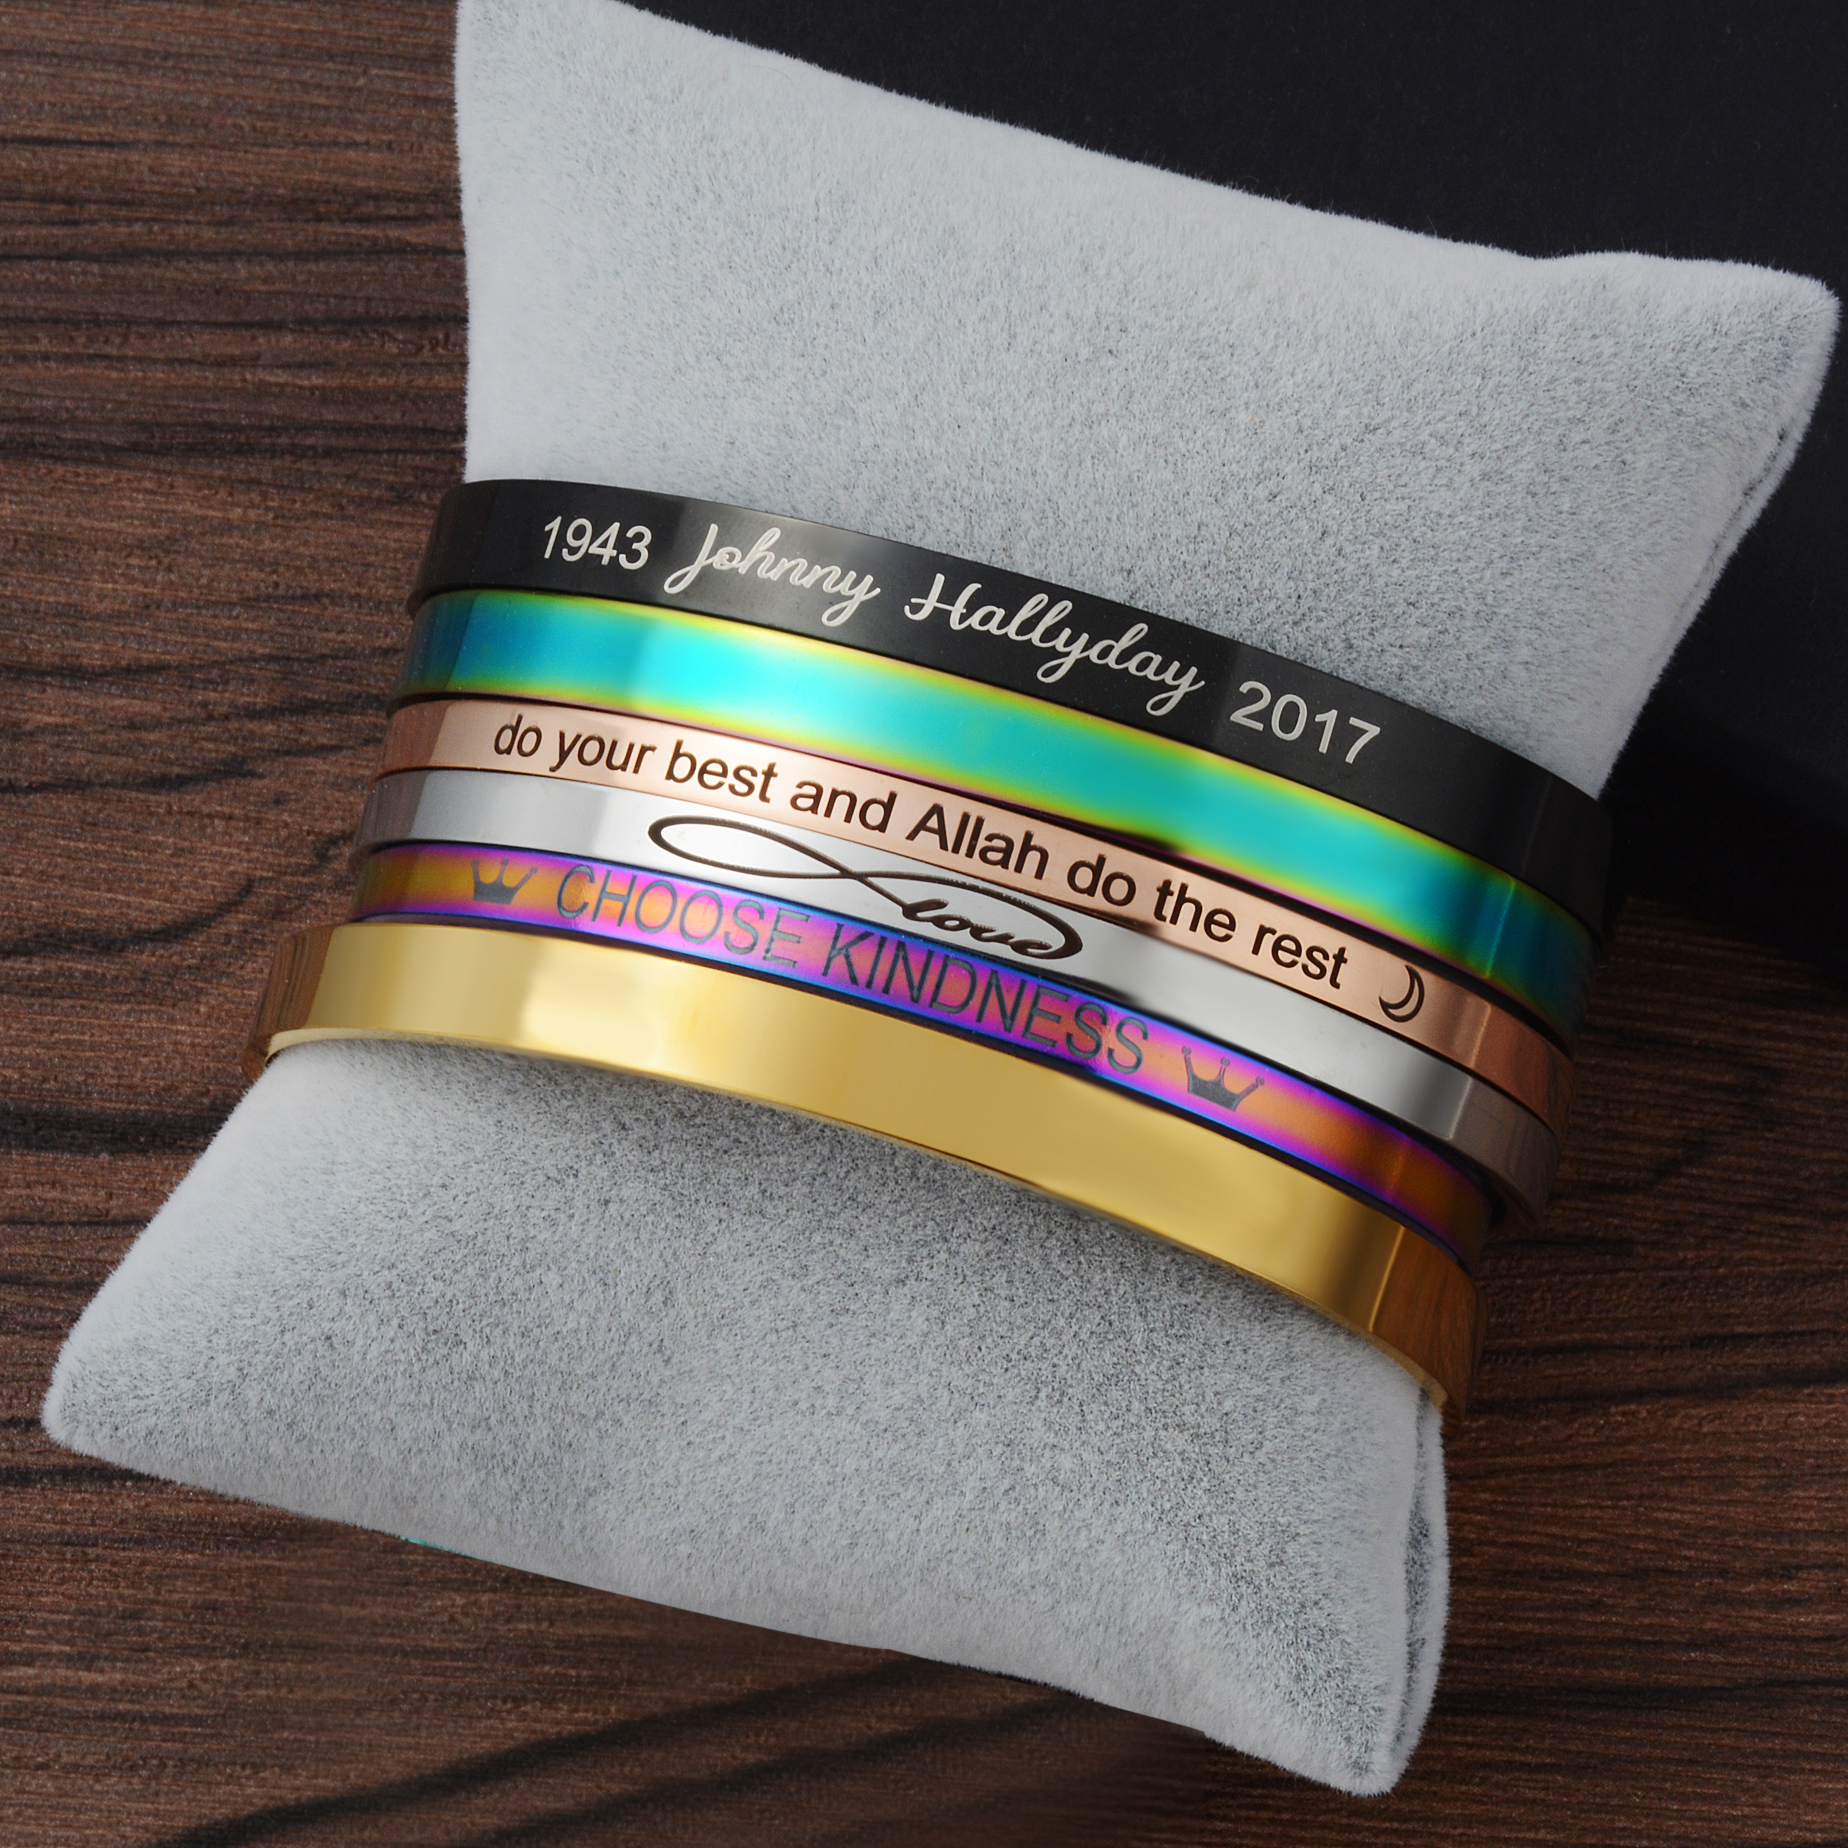 Customized Laser Engraved Bracelet For Men & Women Rose Gold/Gold/Silver Stainless Steel Adjustable Bangle Jewelry Friends Gift